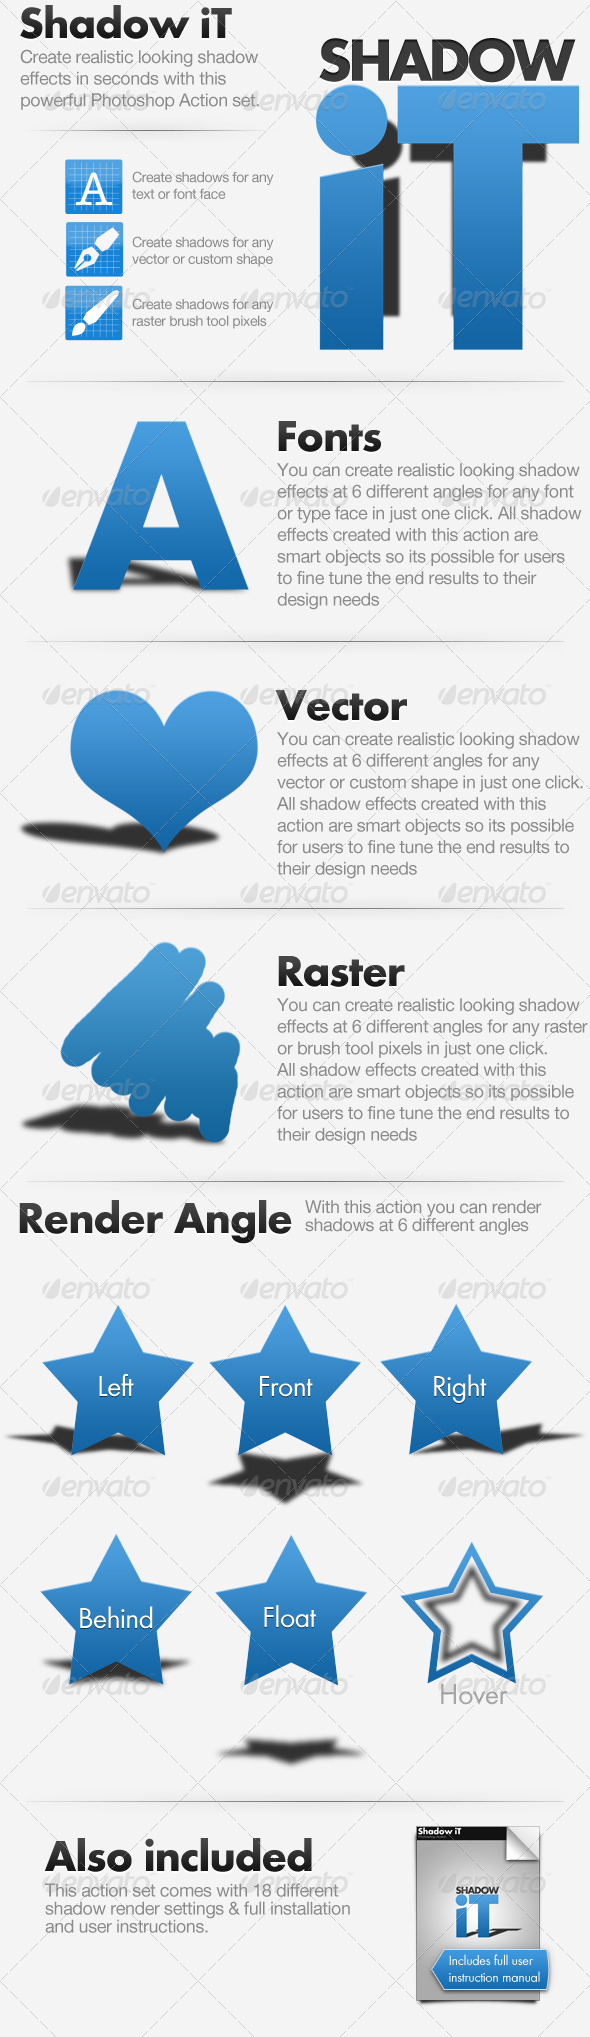 ���� �������� ���������� �������� GraphicRiver preview.jpg